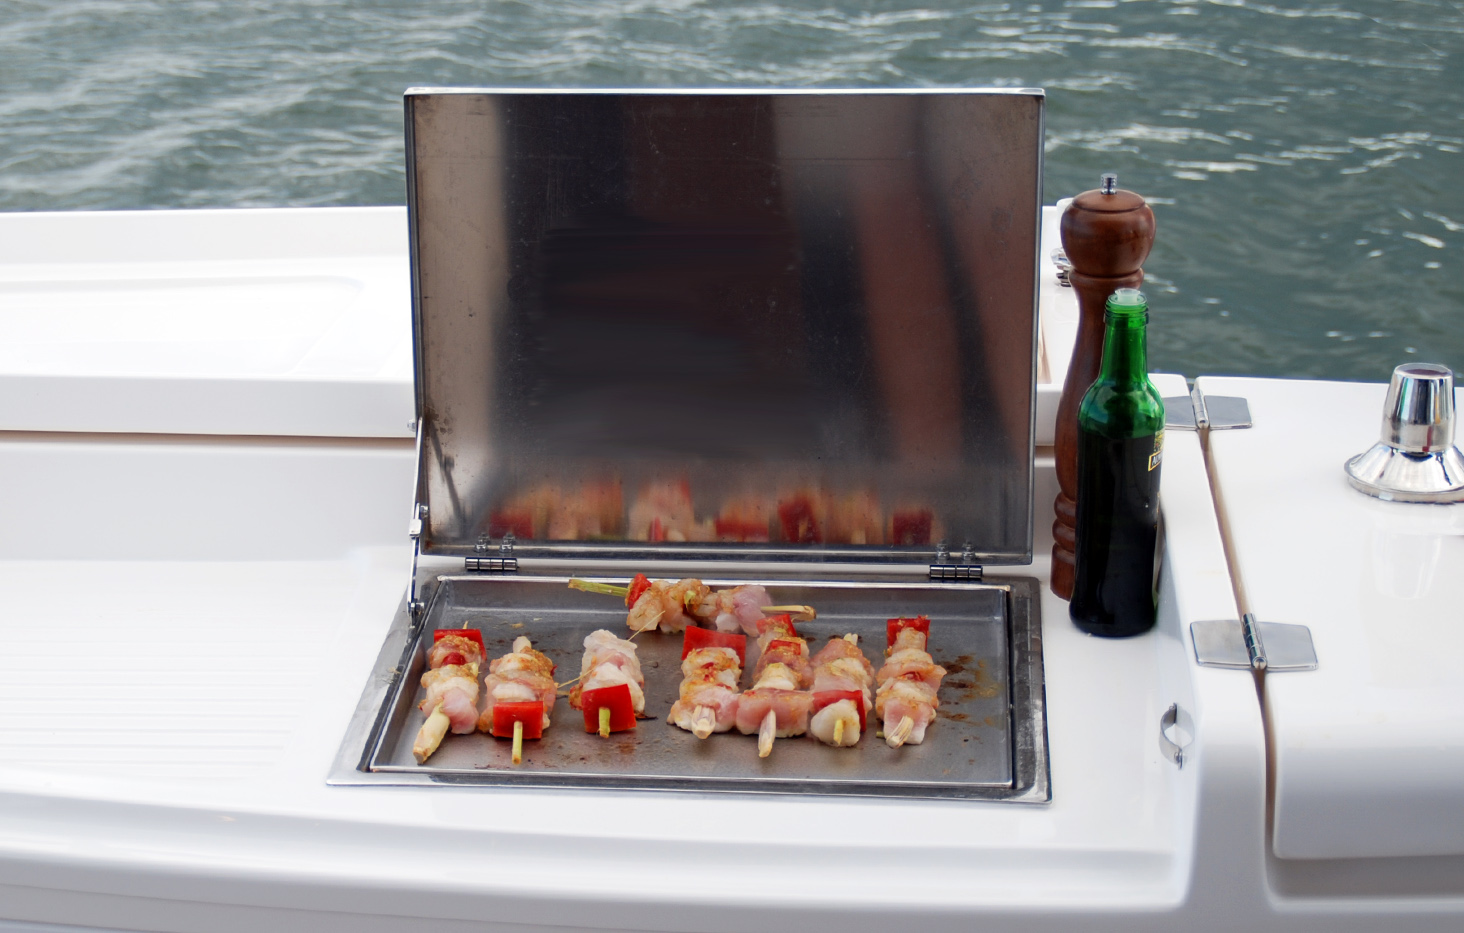 Stainless flush mount drop in boat bbq Australia